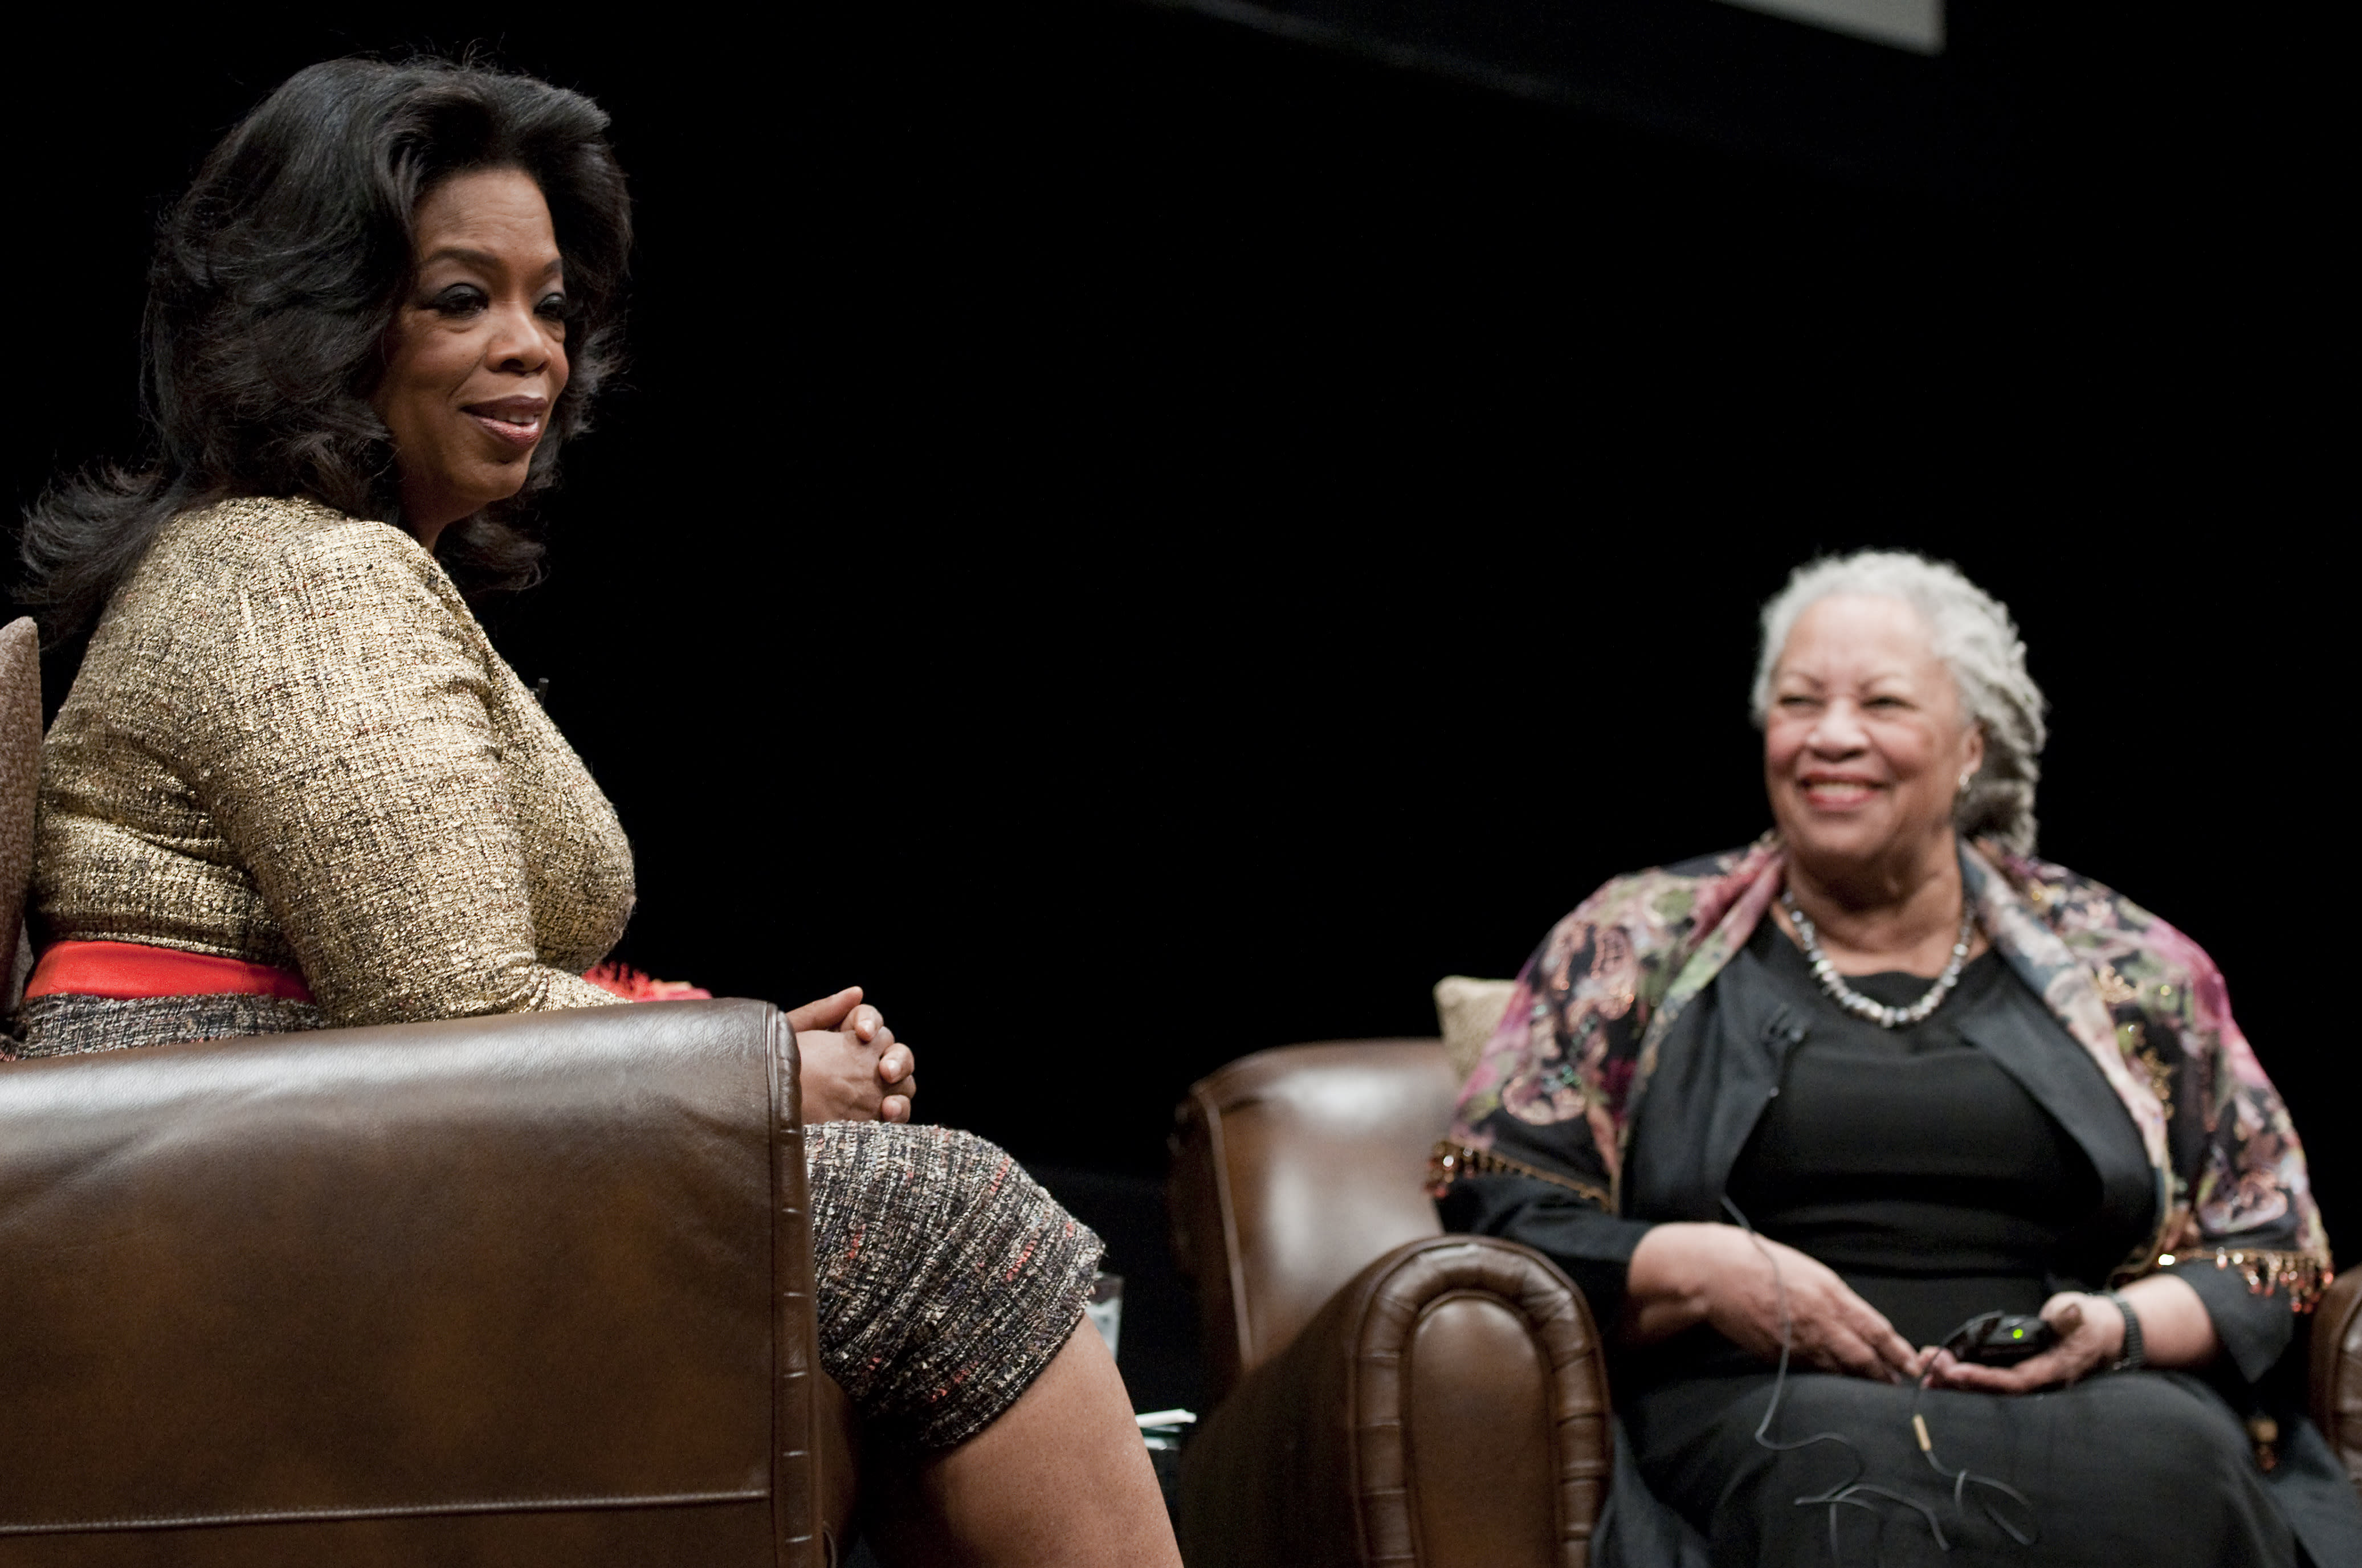 CHICAGO - OCTOBER 20: Oprah Winfrey and Toni Morrison attend the Carl Sandburg literary awards dinner at the University of Illinois at Chicago Forum on October 20, 2010 in Chicago, Illinois. (Photo by Daniel Boczarski/FilmMagic)